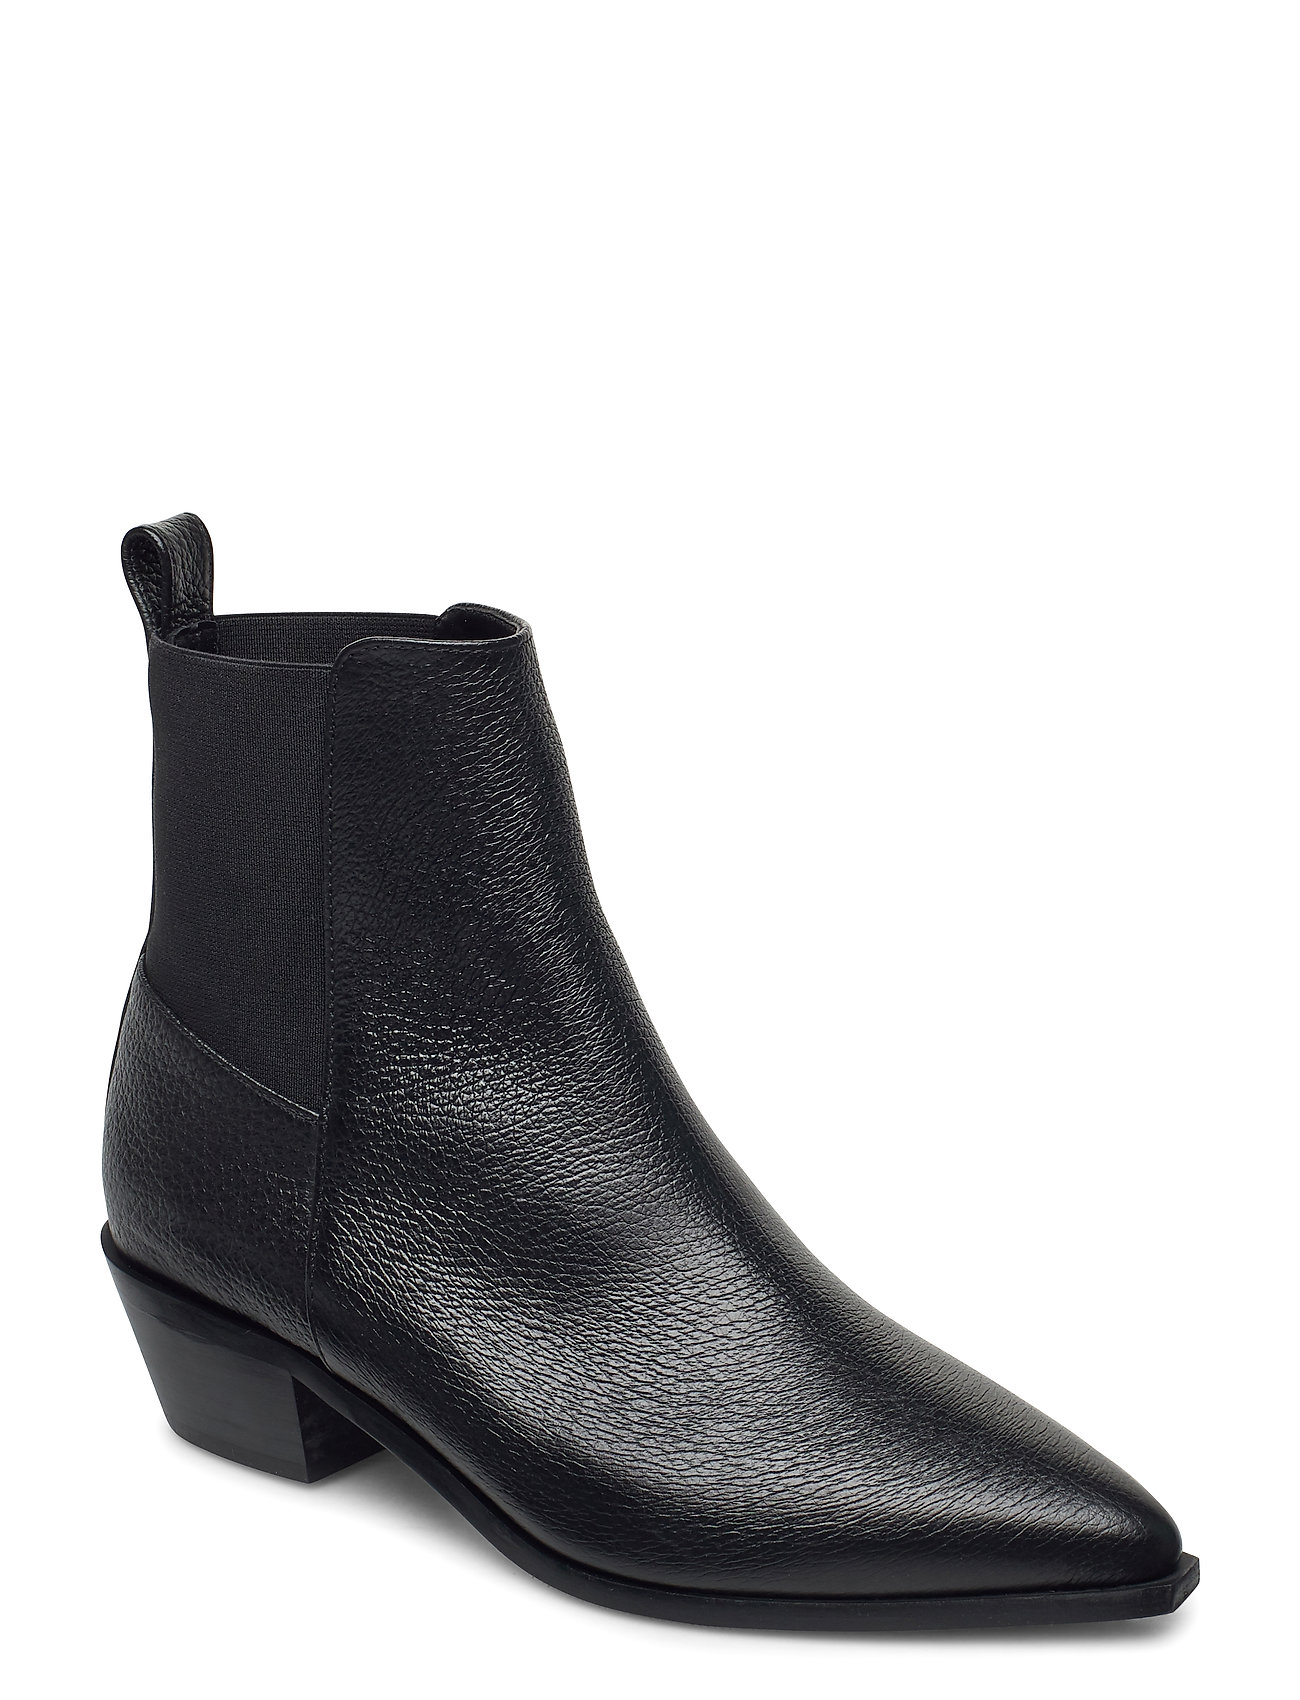 Image of Willow Grained Leather Shoes Boots Ankle Boots Ankle Boot - Heel Sort Flattered (3438366289)